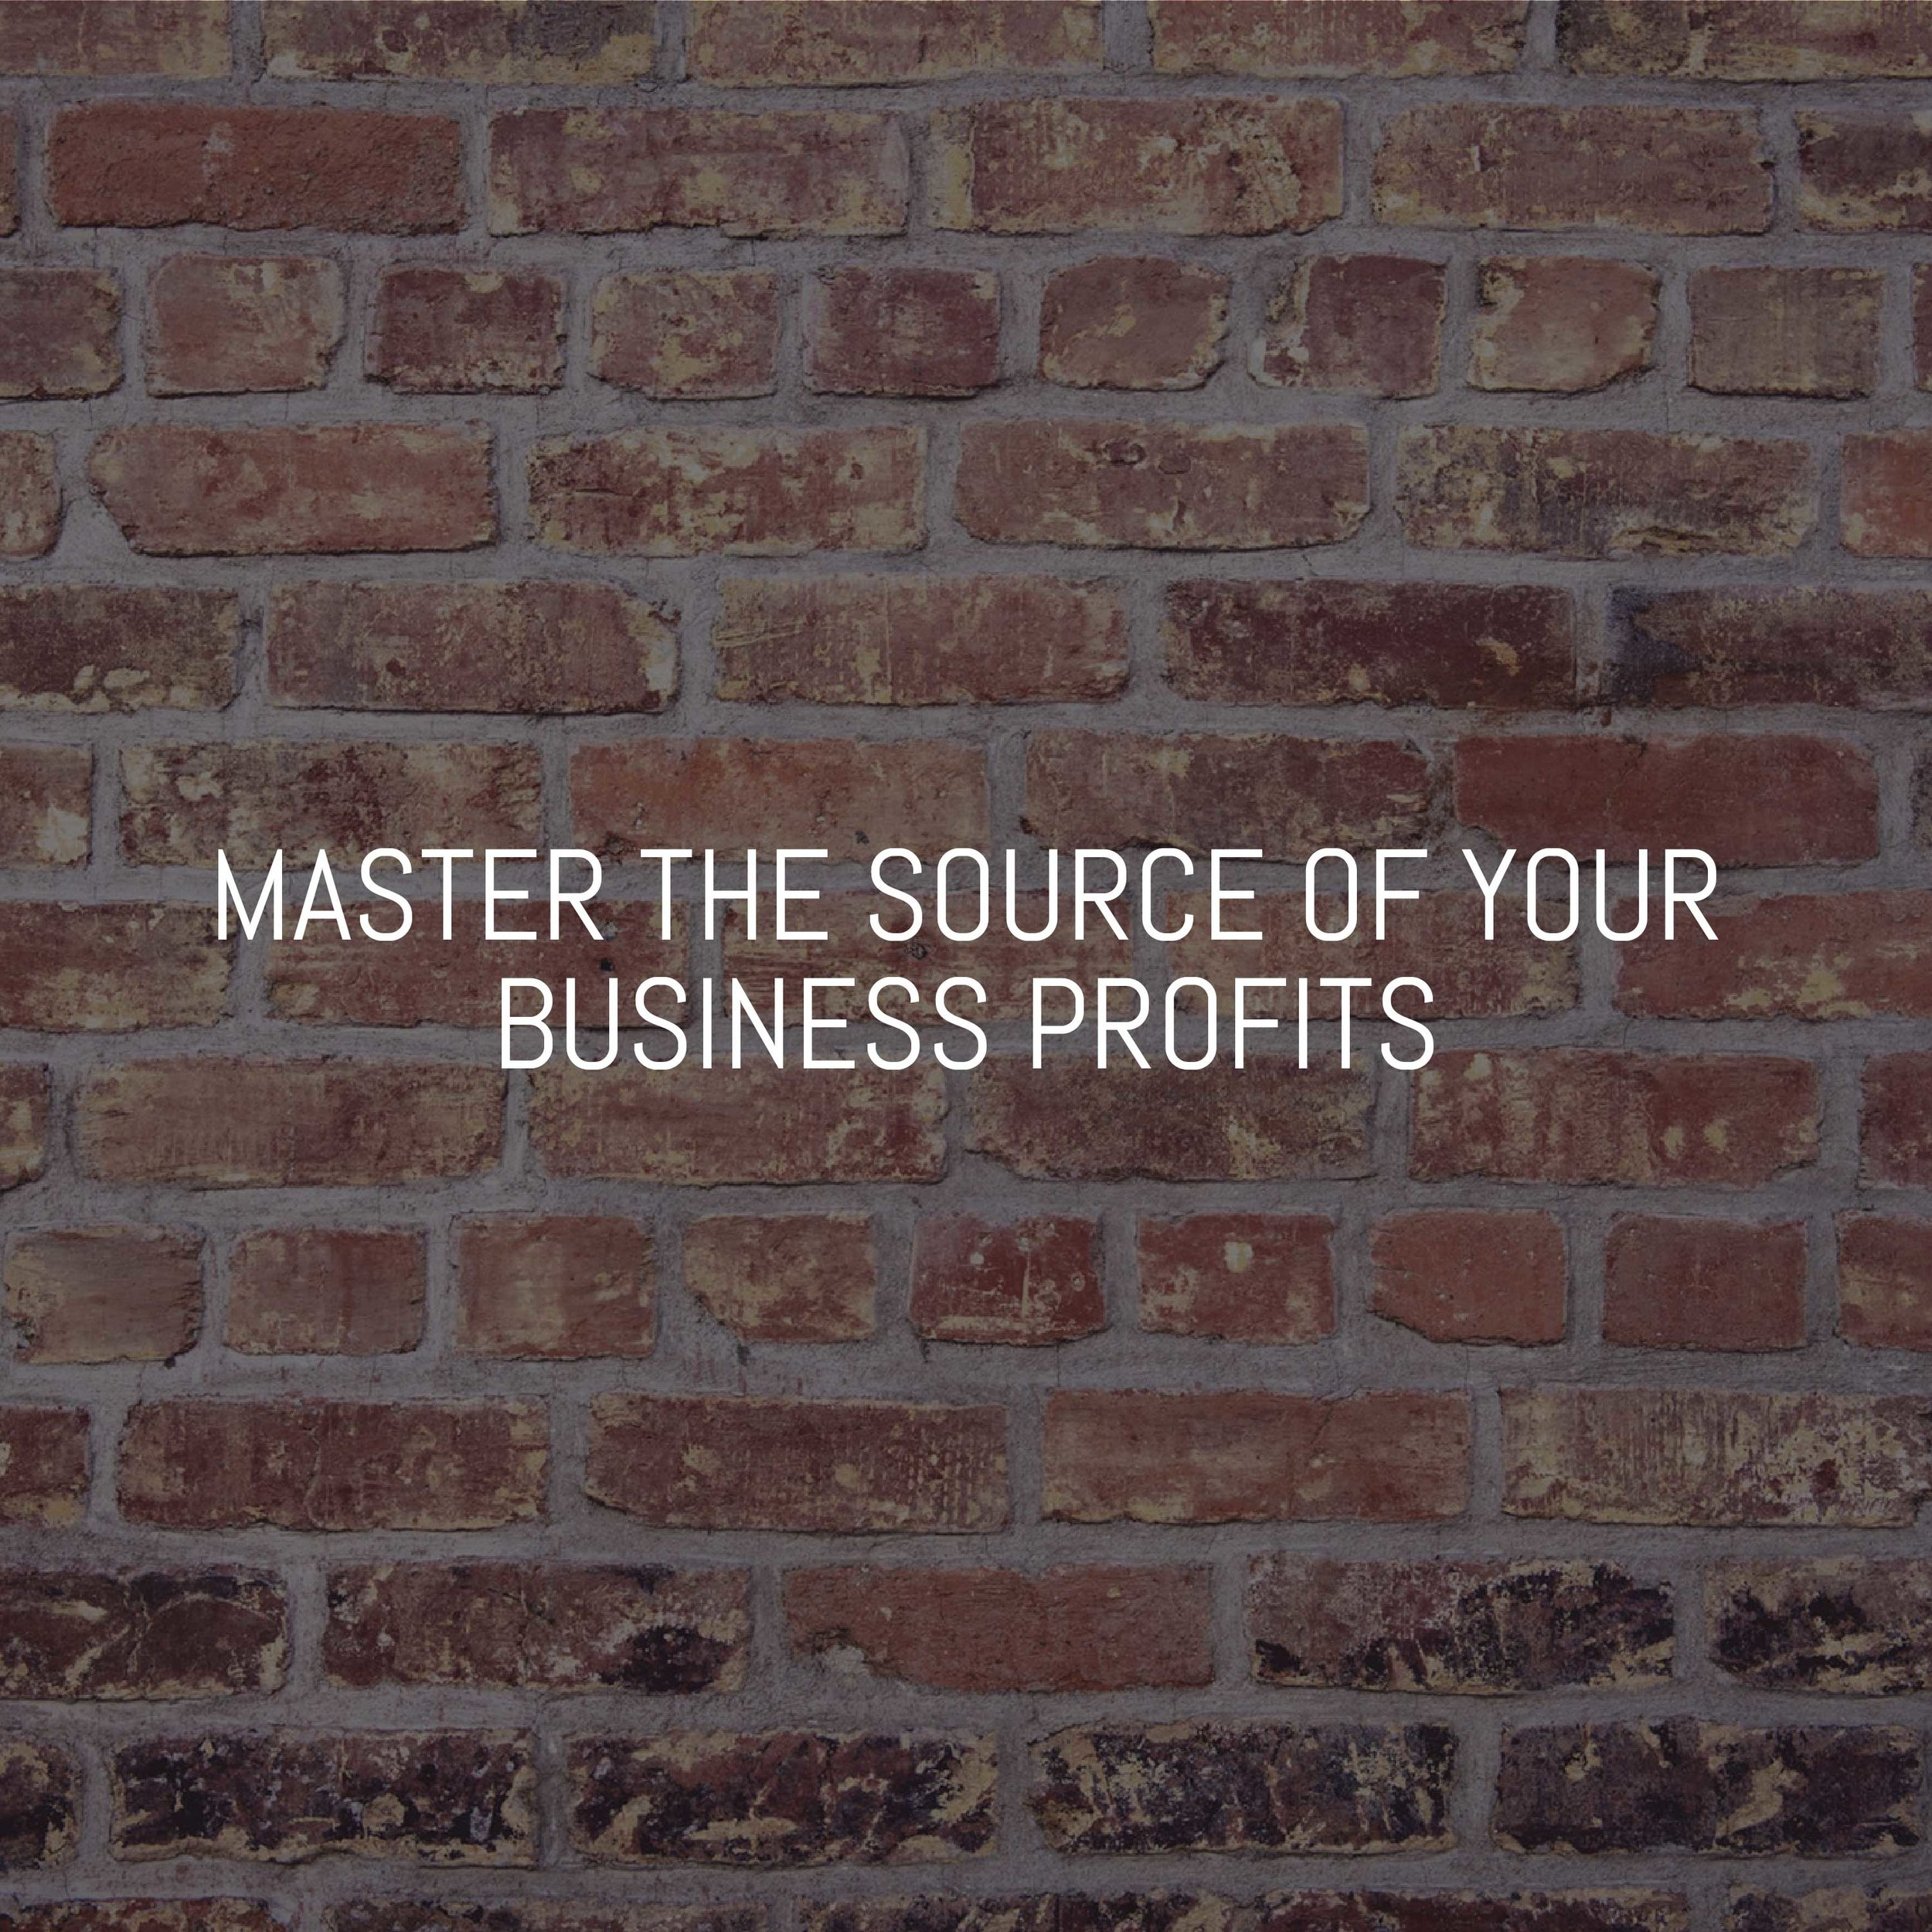 MASTER-THE-SOURCE-OF-YOUR-BUSINESS-PROFITS.jpg